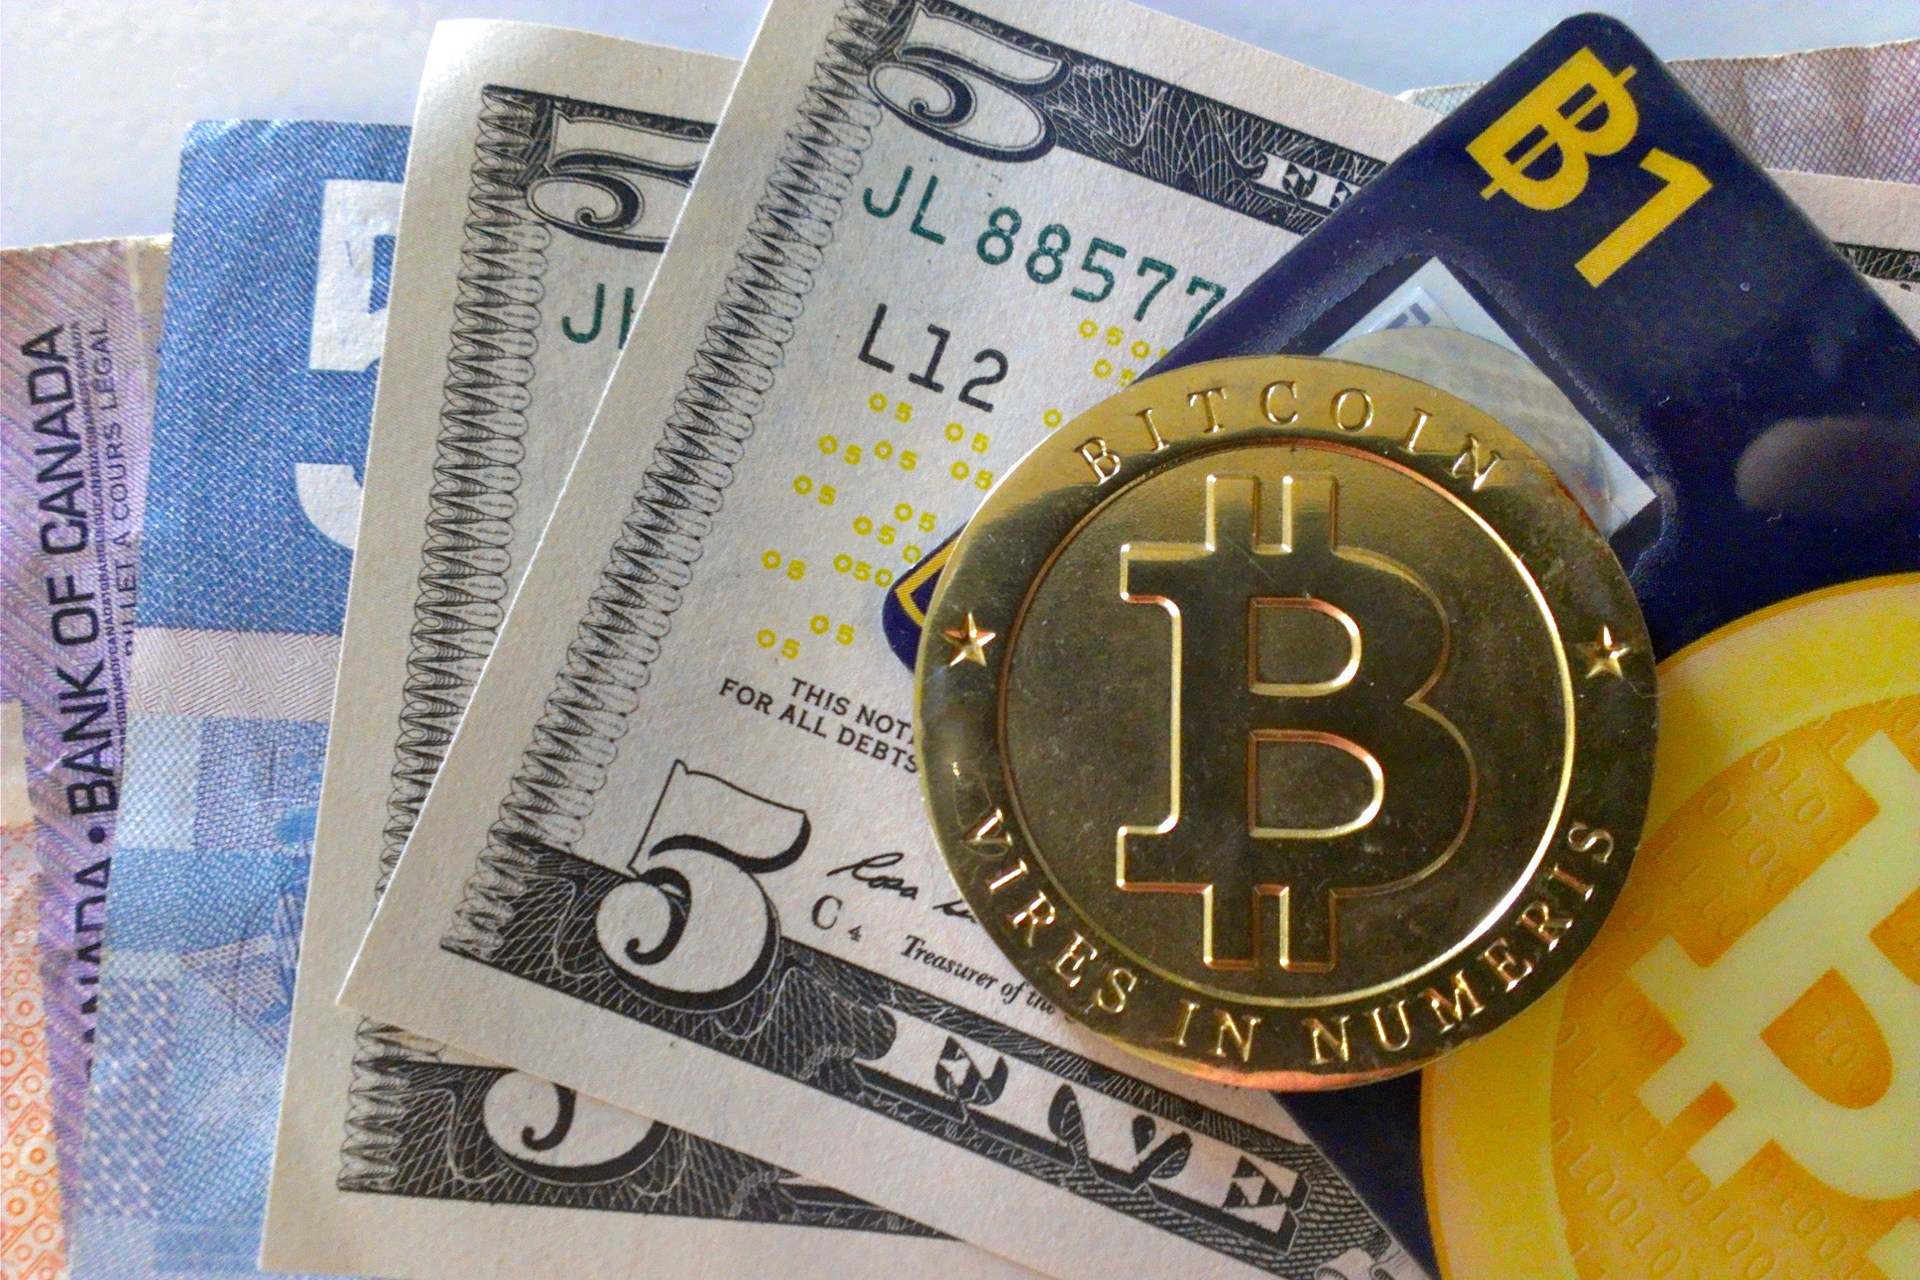 Bitcoin exchange Mt.Gox reveals technical upgrades to boost performance